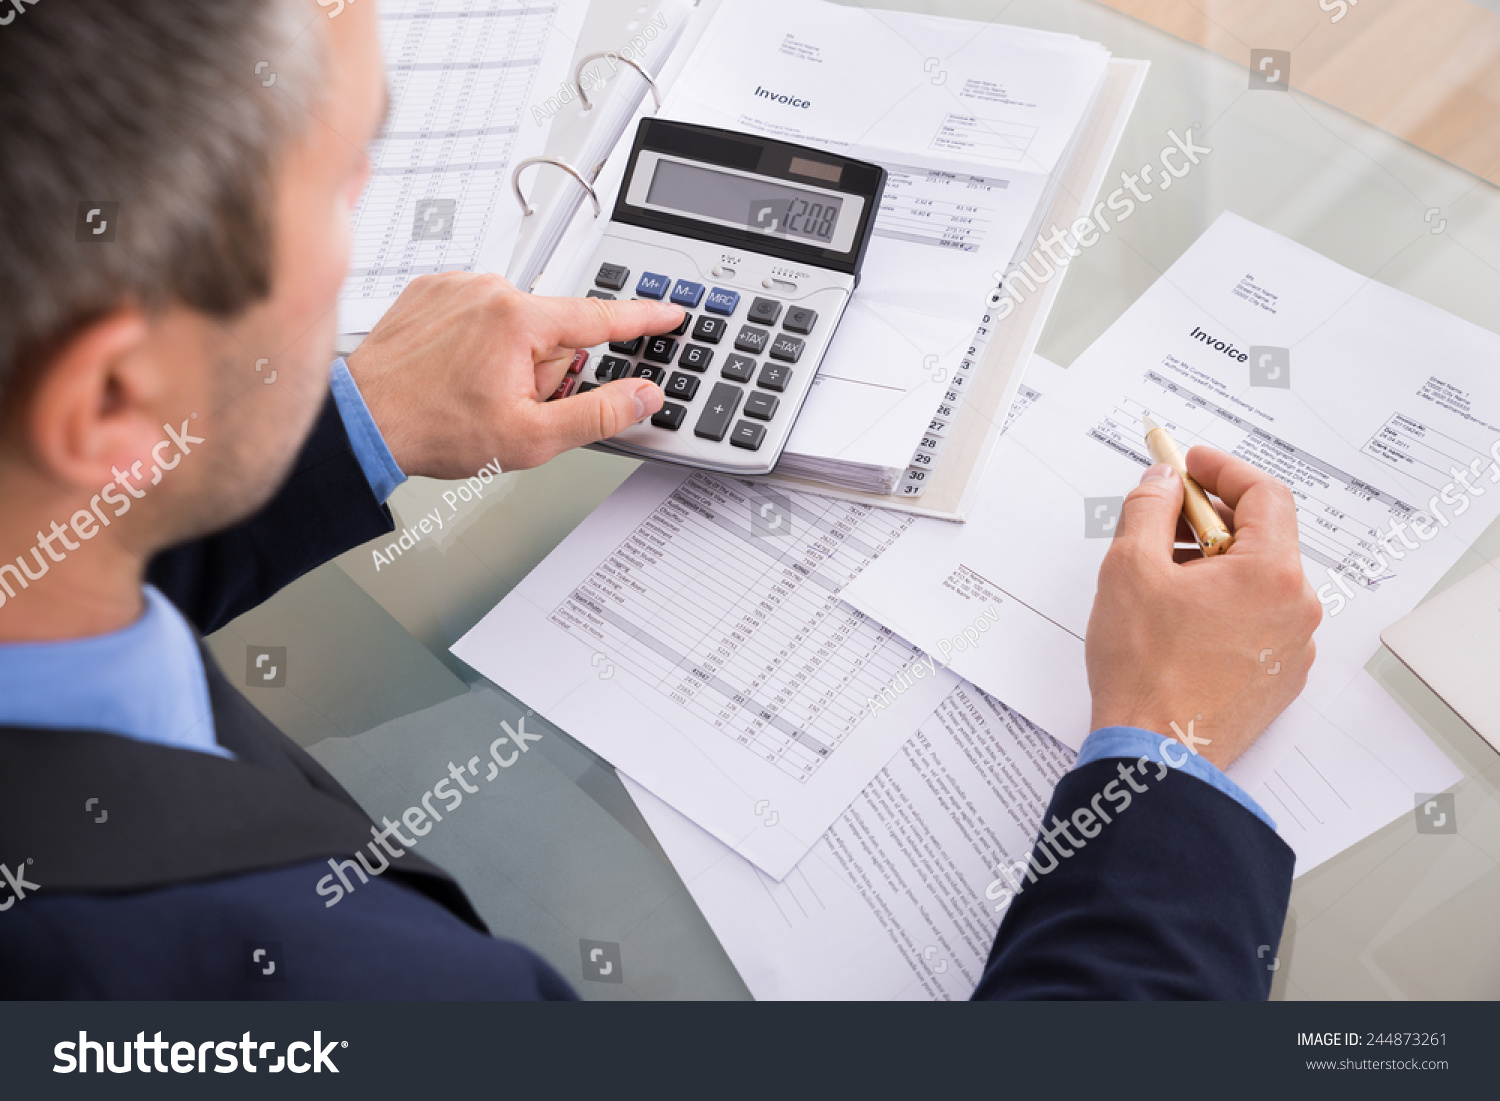 over shoulder view businessman calculating invoices stock photo over the shoulder view of businessman calculating invoices using calculator